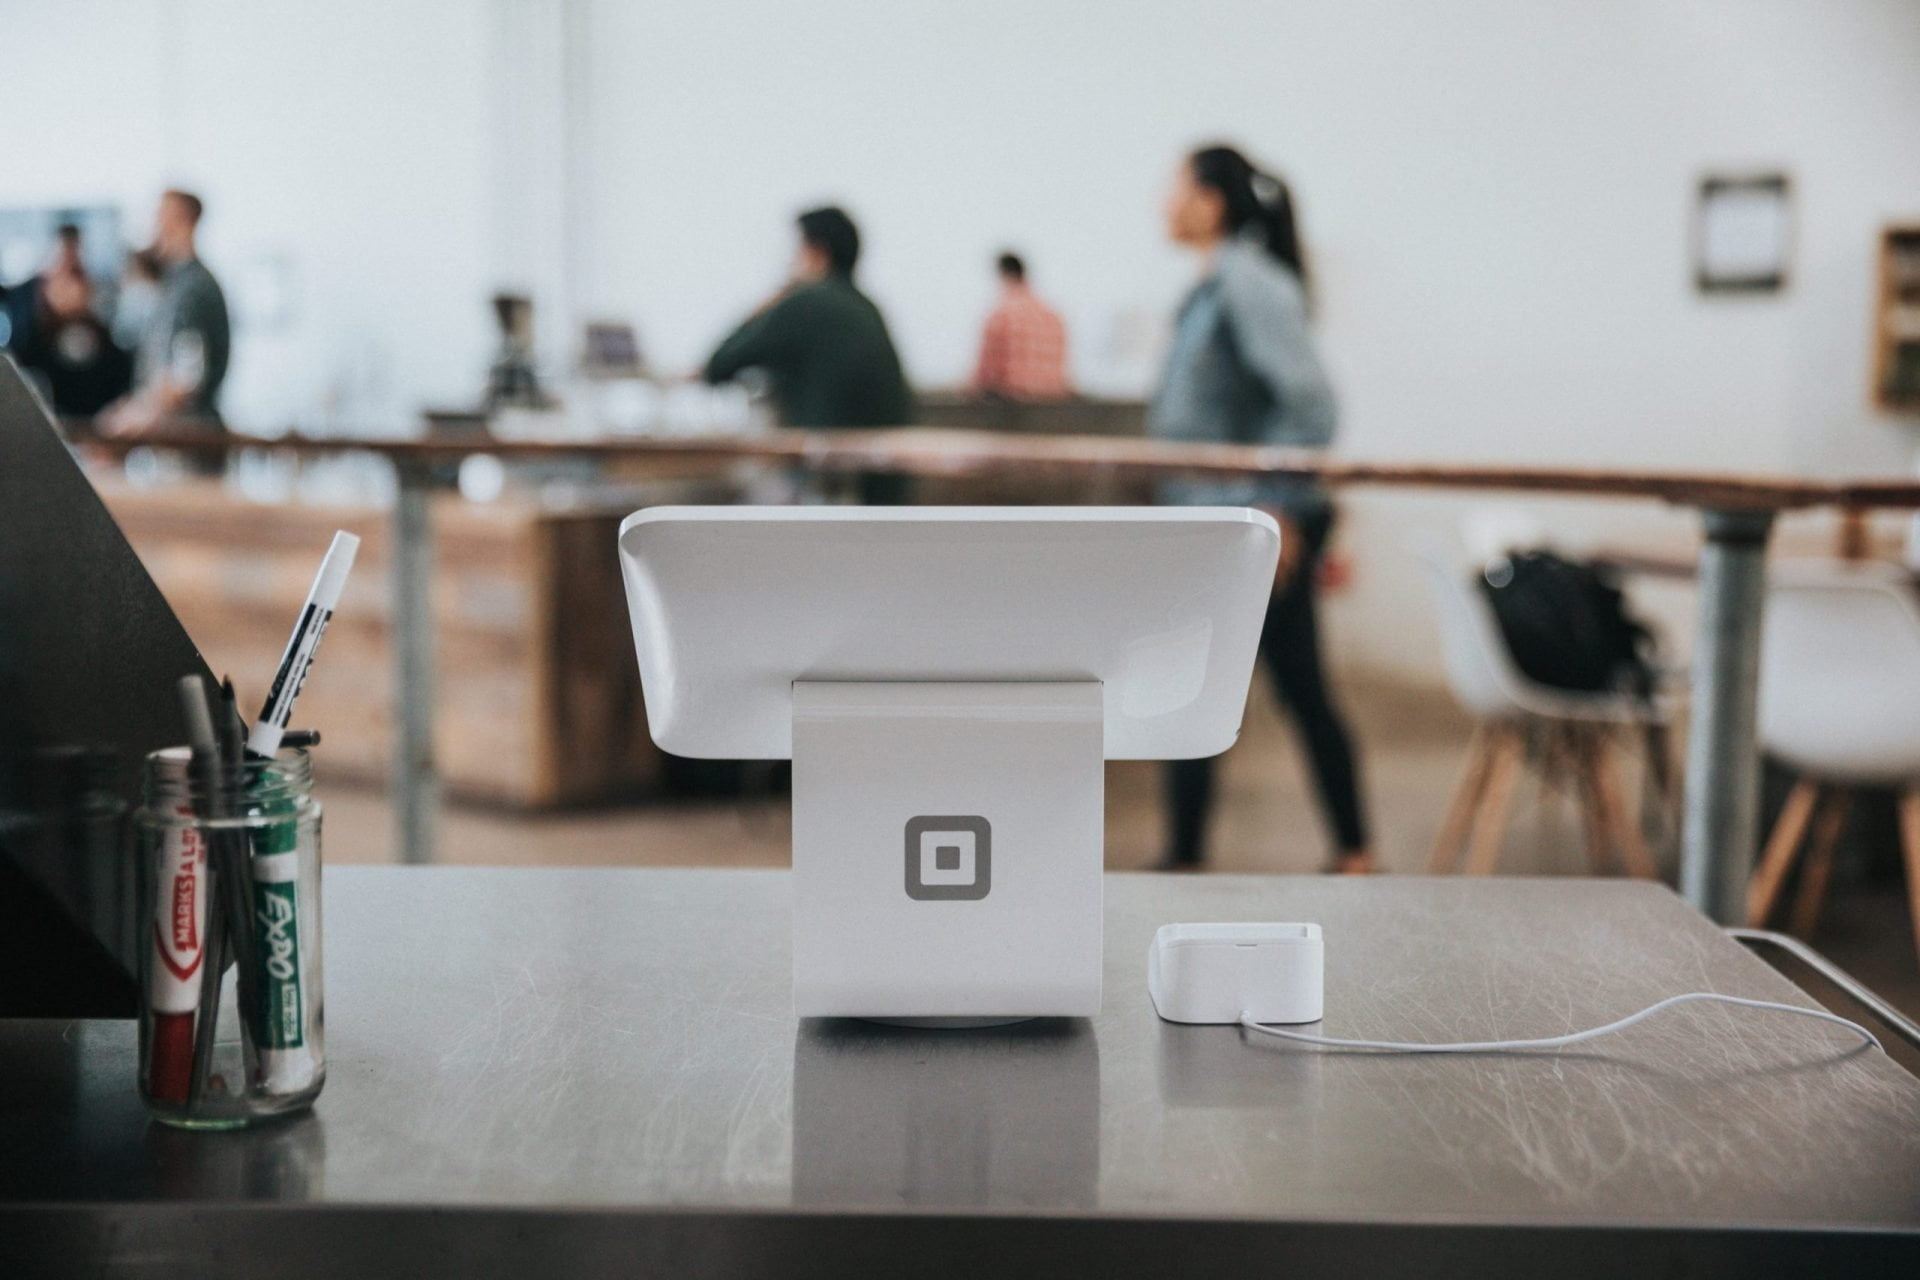 Square Crypto Goes Full Bitcoin, Hires Well-Known Blockstream Co-Founder 17